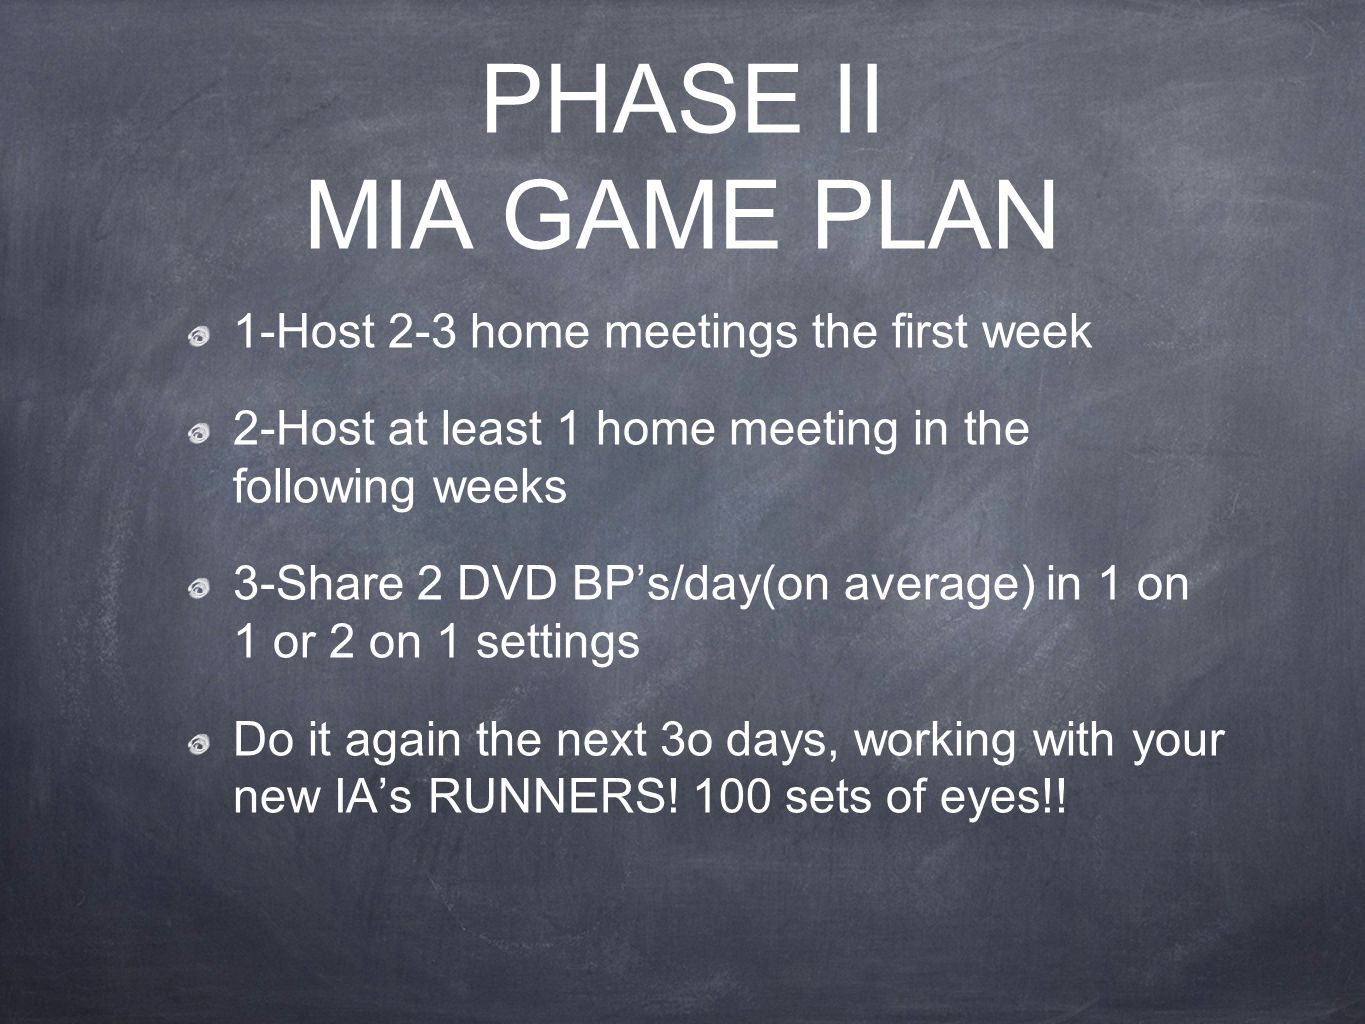 PHASE II MIA GAME PLAN 1-Host 2-3 home meetings the first week